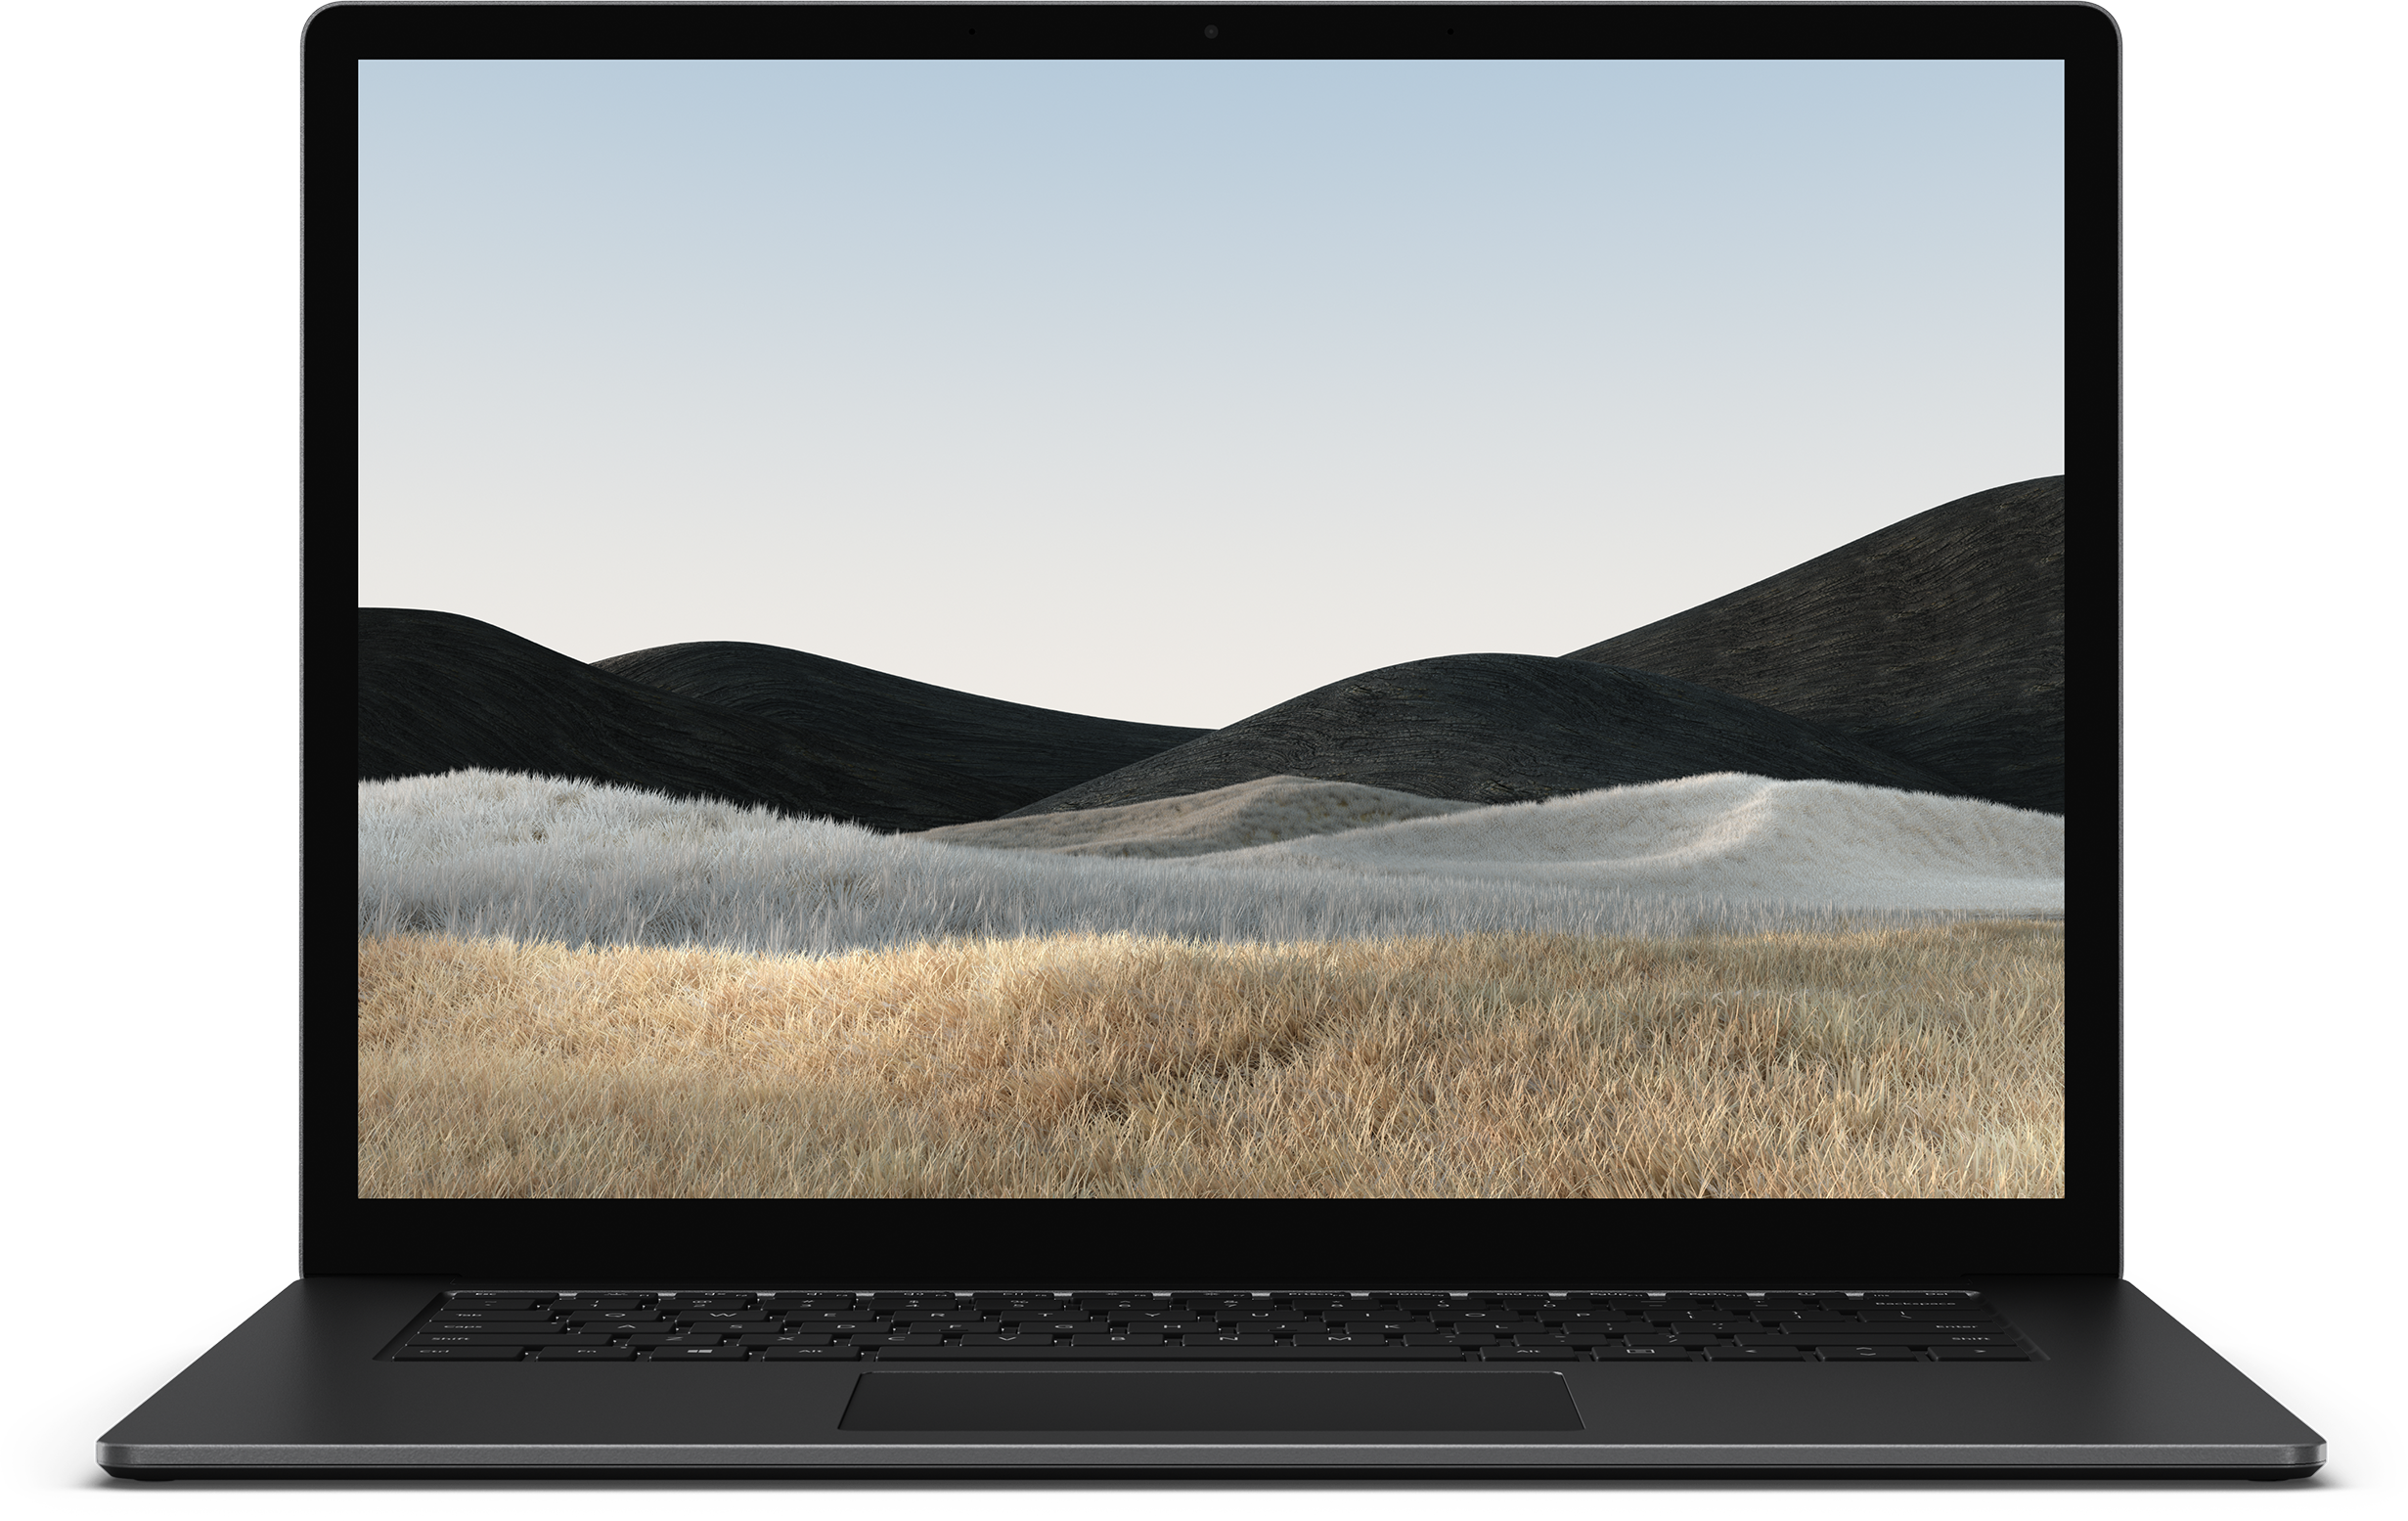 Surface Laptop 4 for Business - 13.5 , Matte Black (Metal), Intel Core i7, 32GB, 1TB Breeze through deadline-filled days with 70% more speed, more multitasking power, and significantly longer battery life than before. All in a stylish, ultra-thin design. Choose from rich colours, two durable keyboard finishes, and 13.5- or 15-inch touchscreens.¹